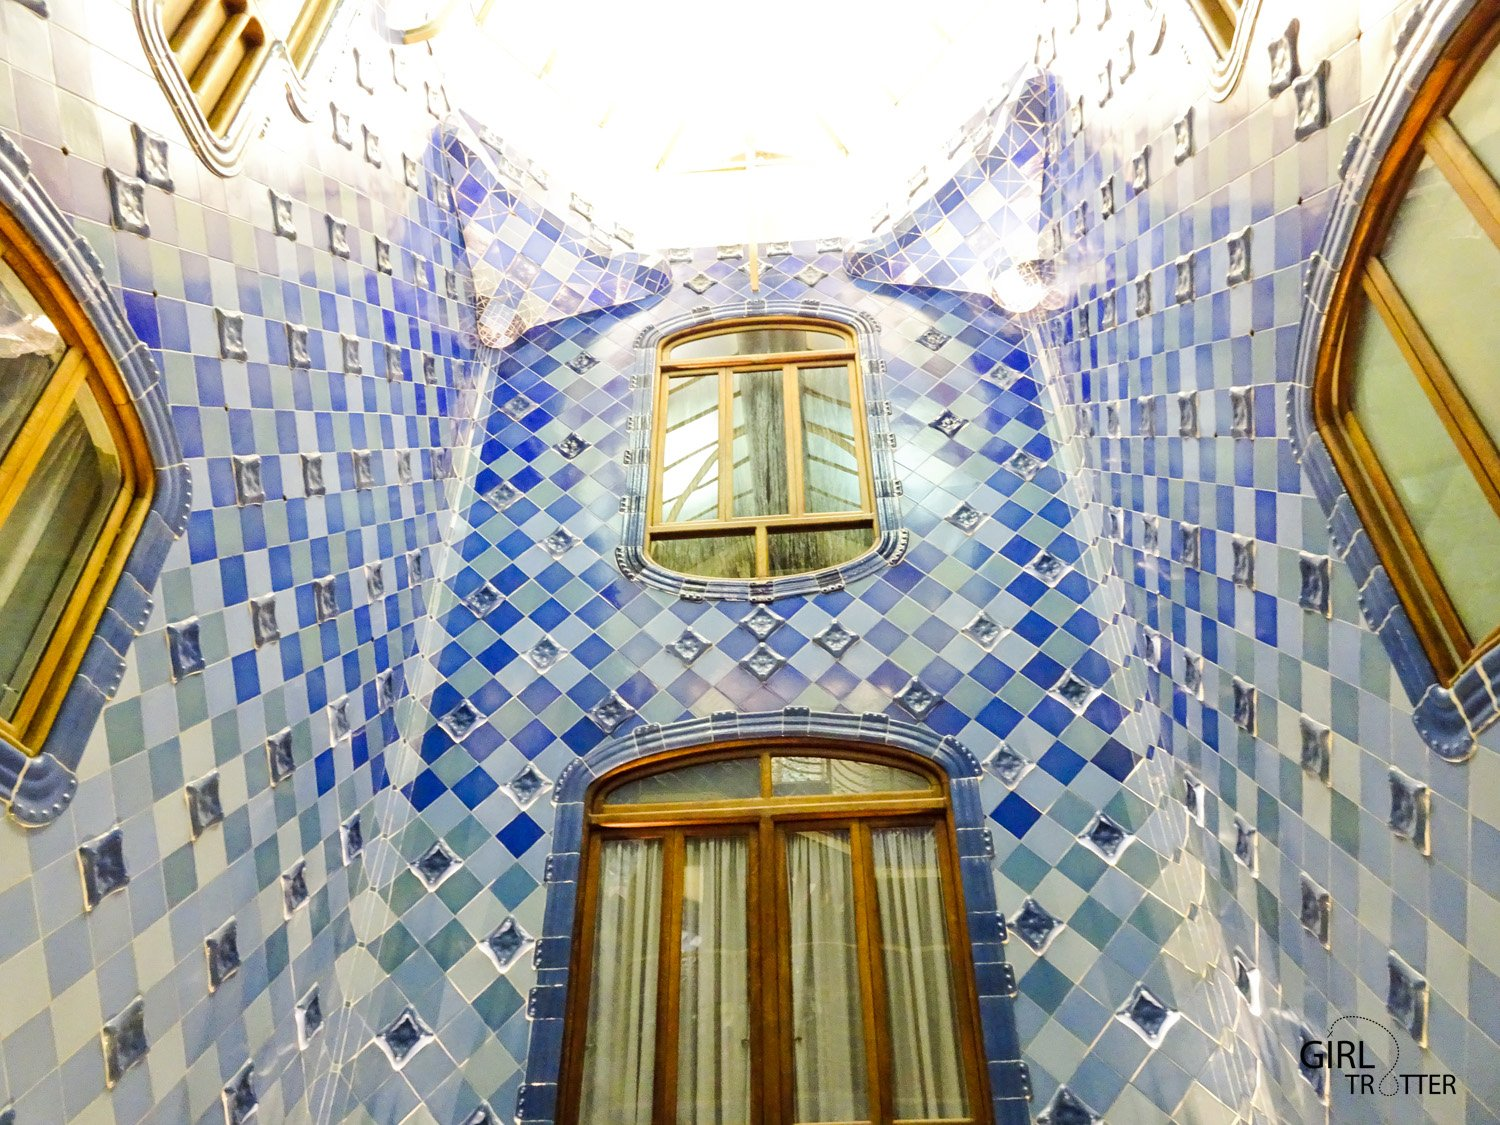 Casa Battlo Barcelone - Girltrotter